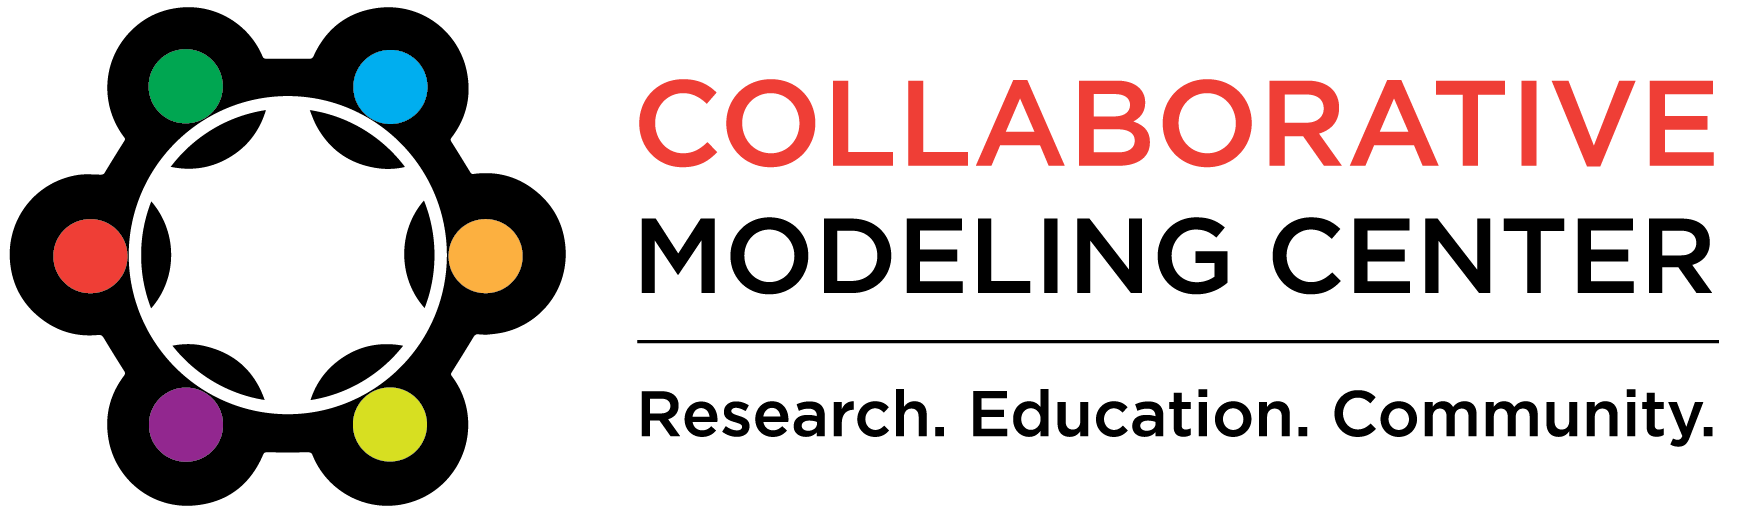 Collaborative Modeling Center